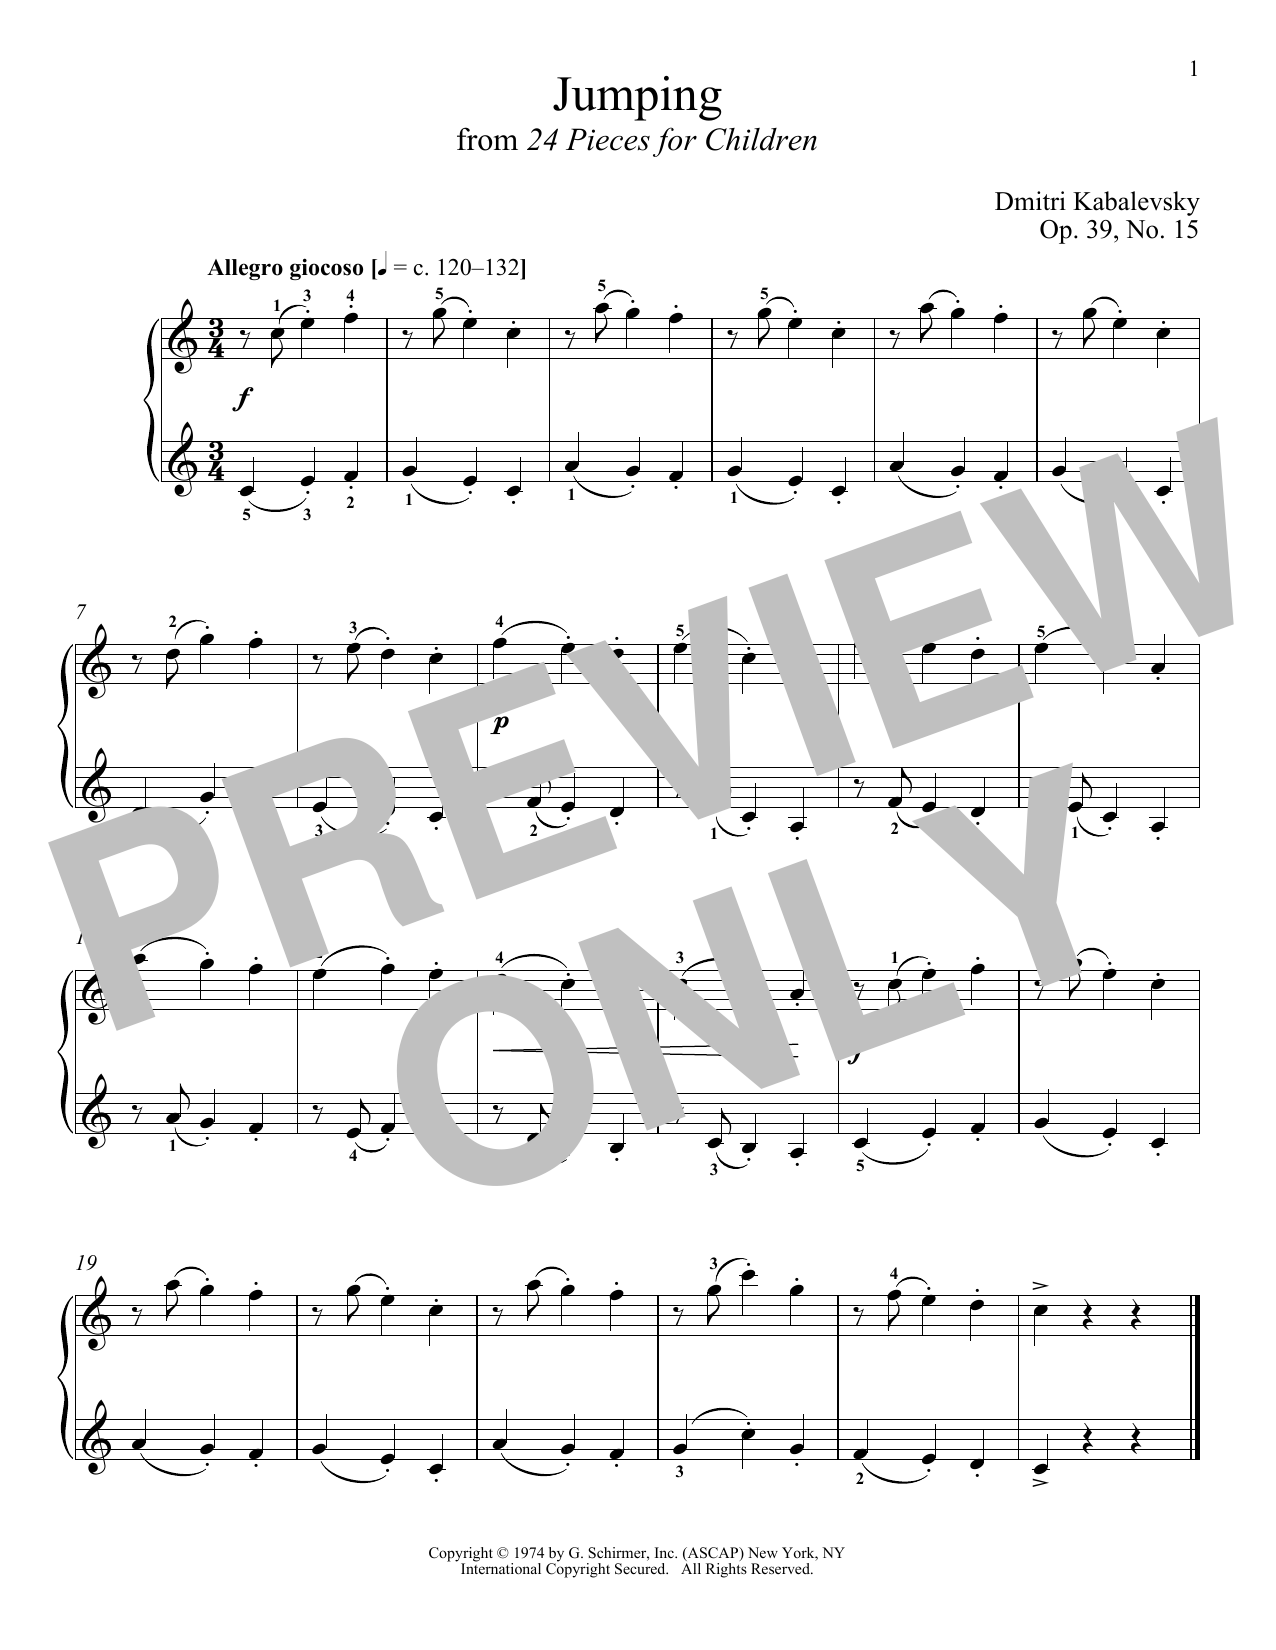 Download Dmitri Kabalevsky 'Jumping, Op. 39, No. 15' Digital Sheet Music Notes & Chords and start playing in minutes